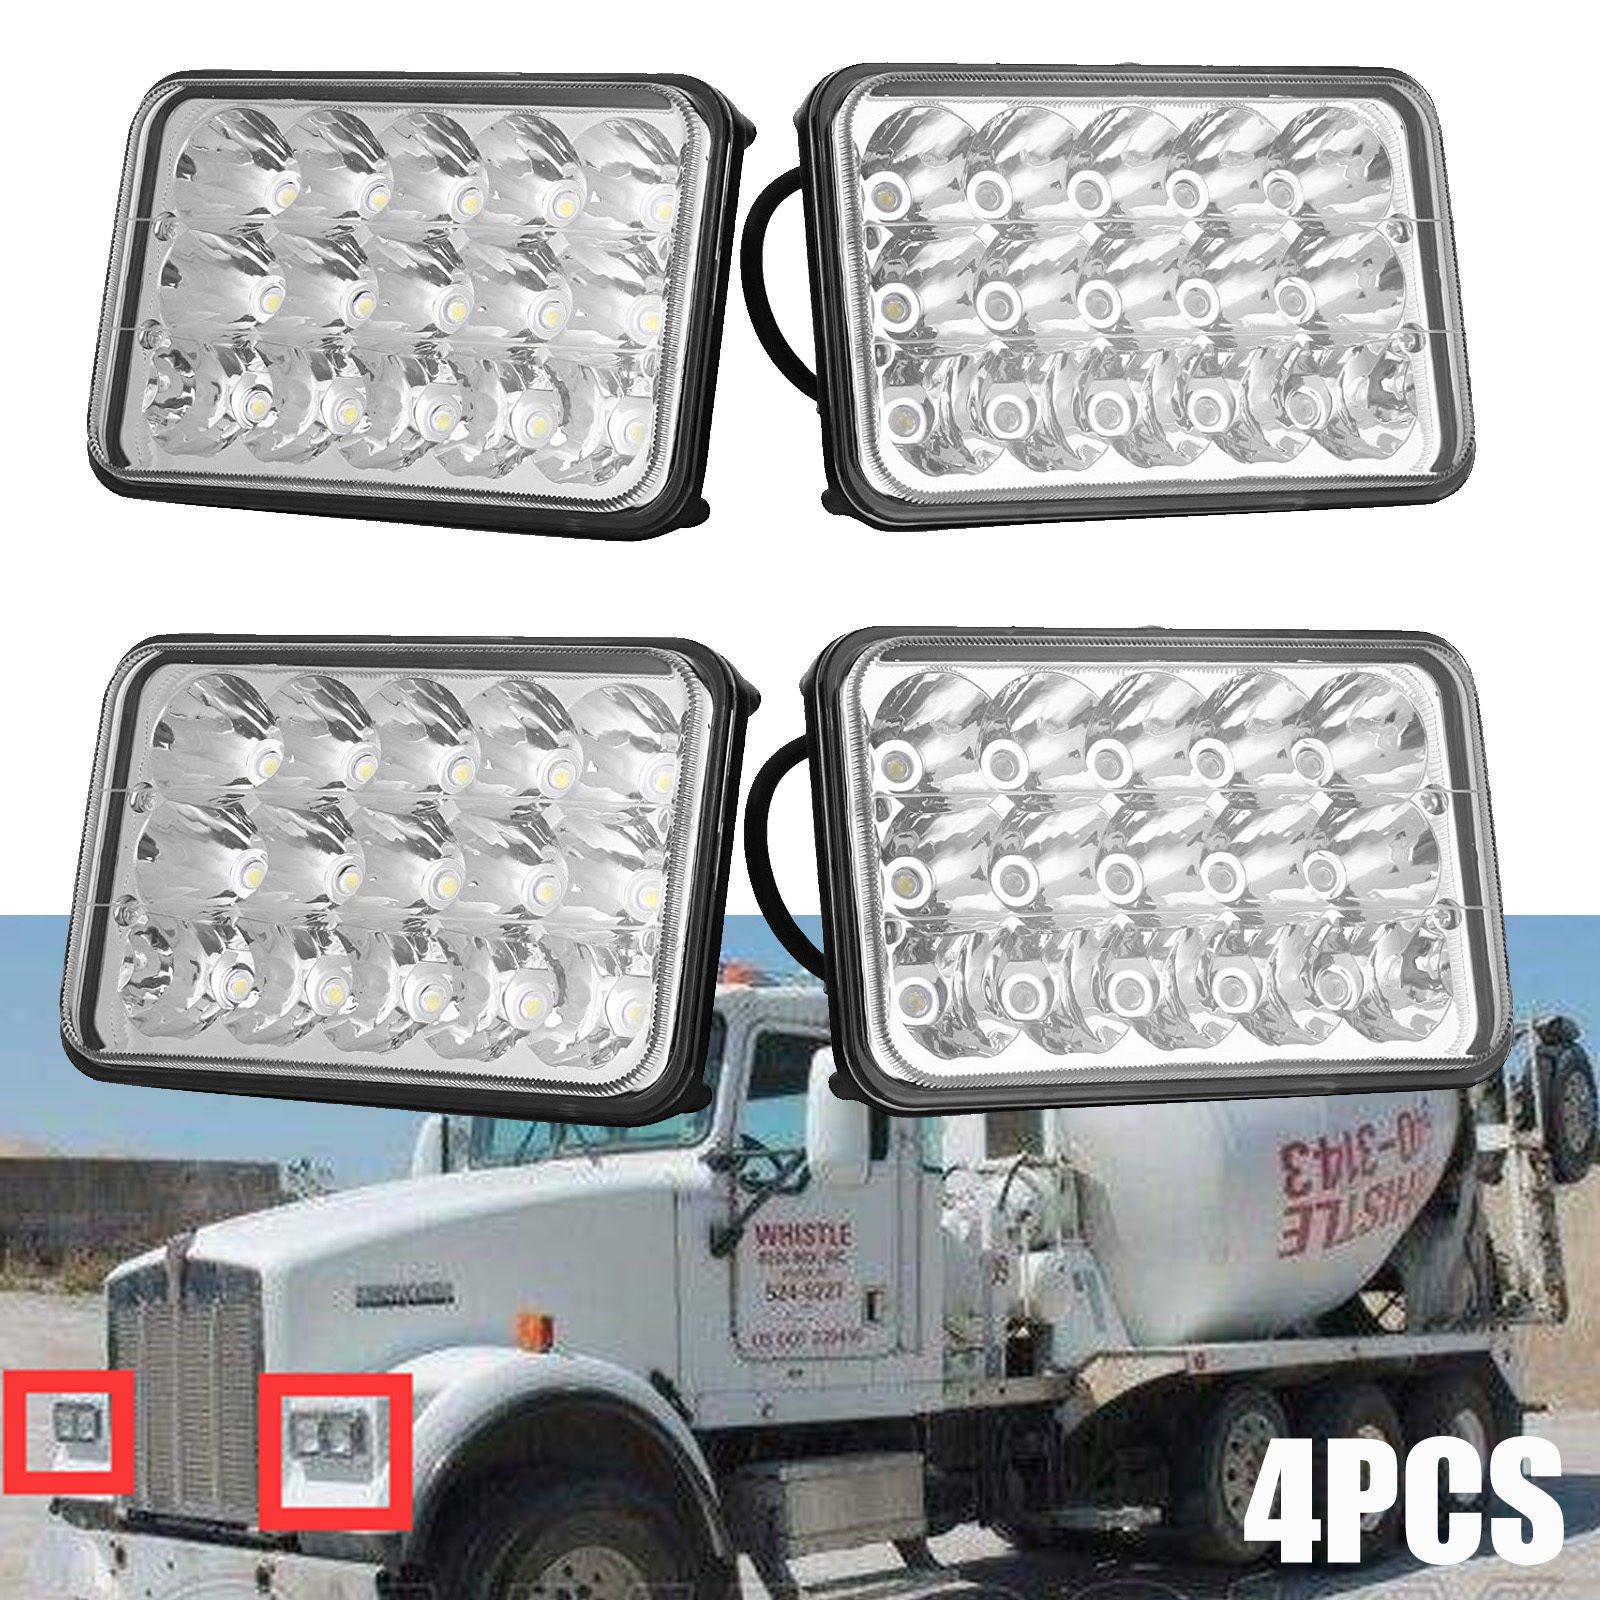 4PCS Sealed Beam Headlights for International Harvester 9300 (1988 to 1999 ), 4X6 Inch Rectangular LED Lights H4651/H4652/H4656/H4666/H6545/H4642/H4668 Replacement Kit Super Bright White High Low Beam